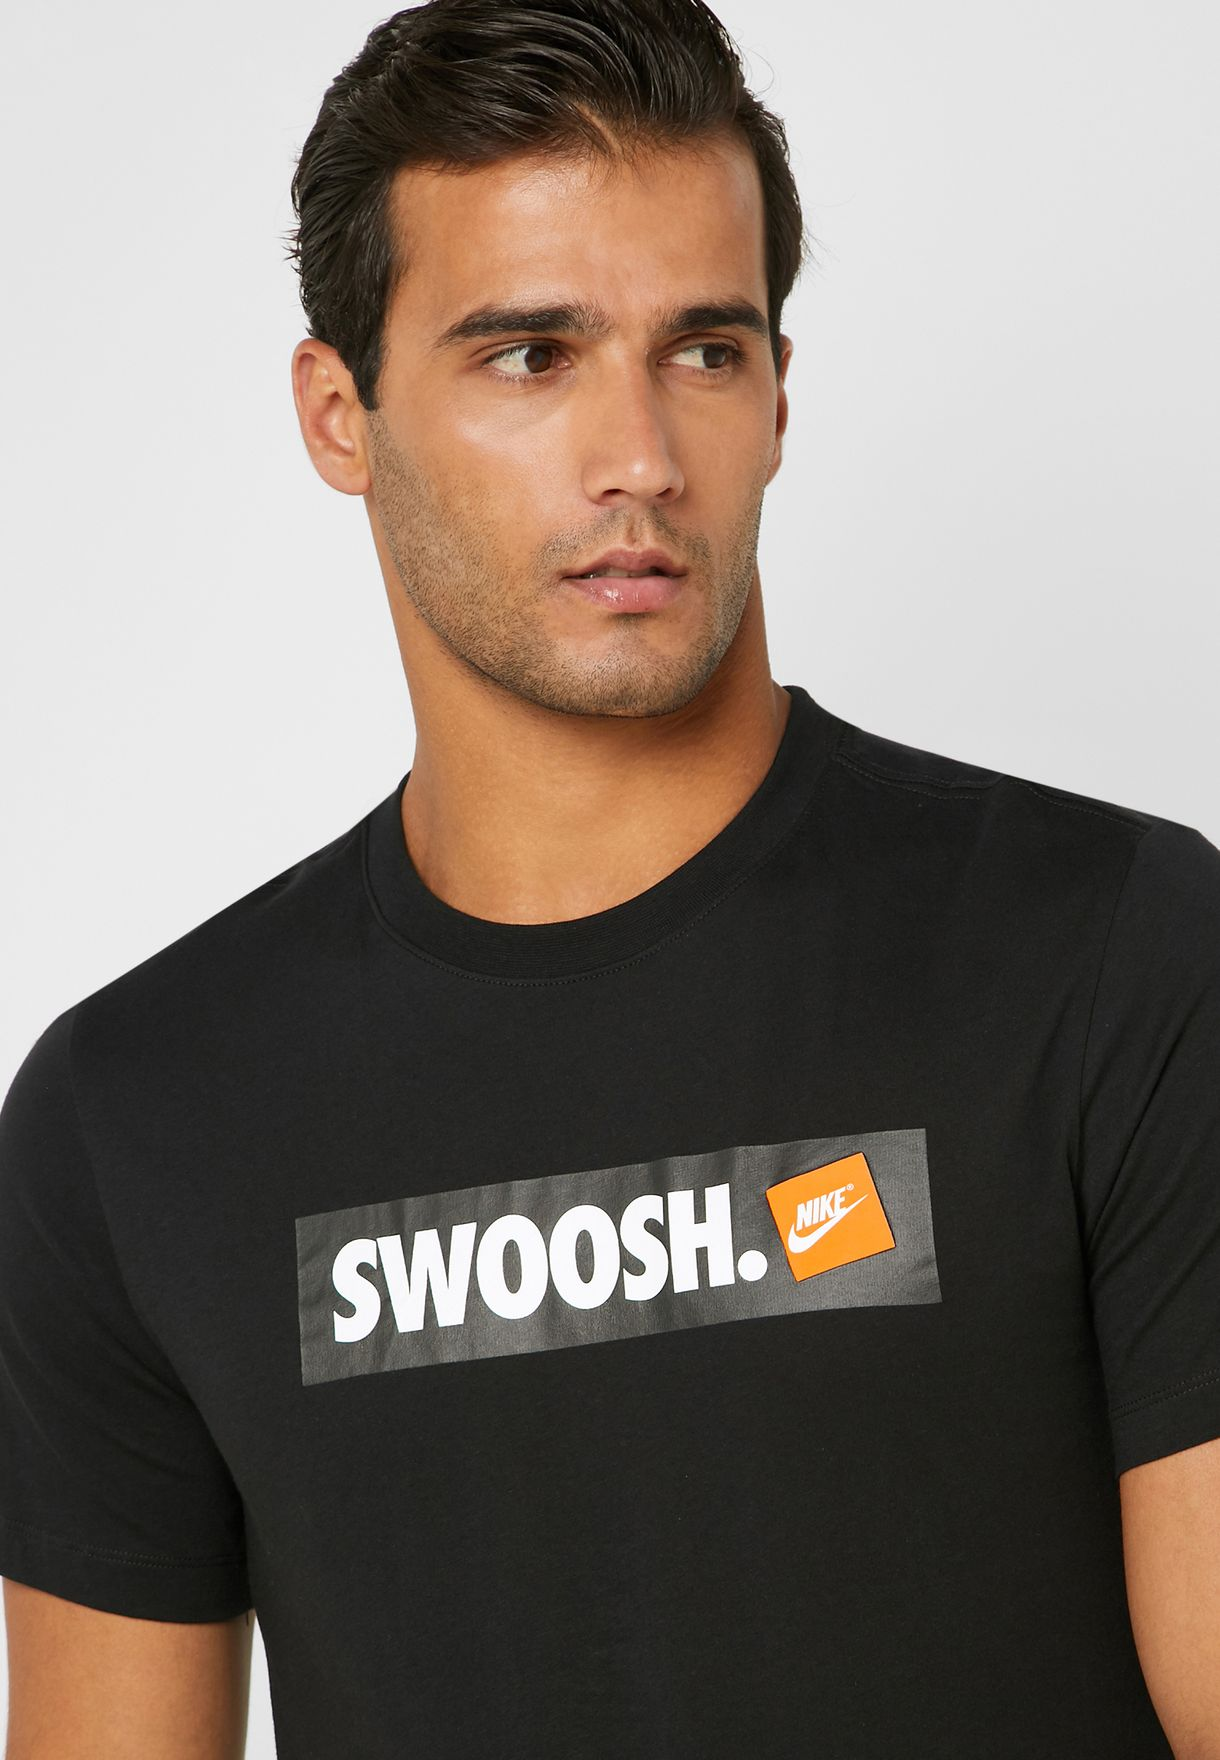 NSW Swoosh Striker T-Shirt